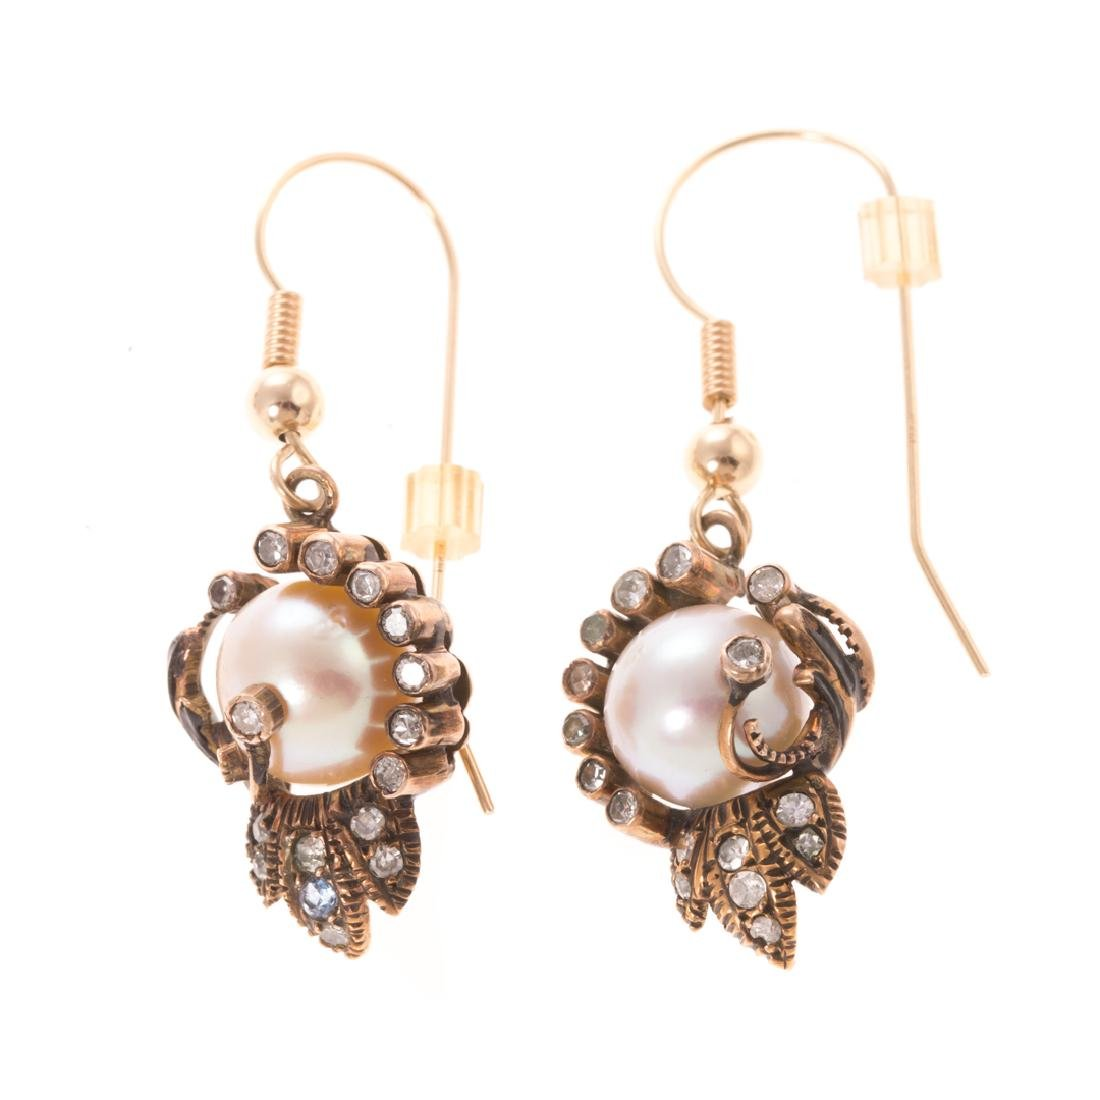 Two Pair of Victorian Earrings in 14K Gold - 2